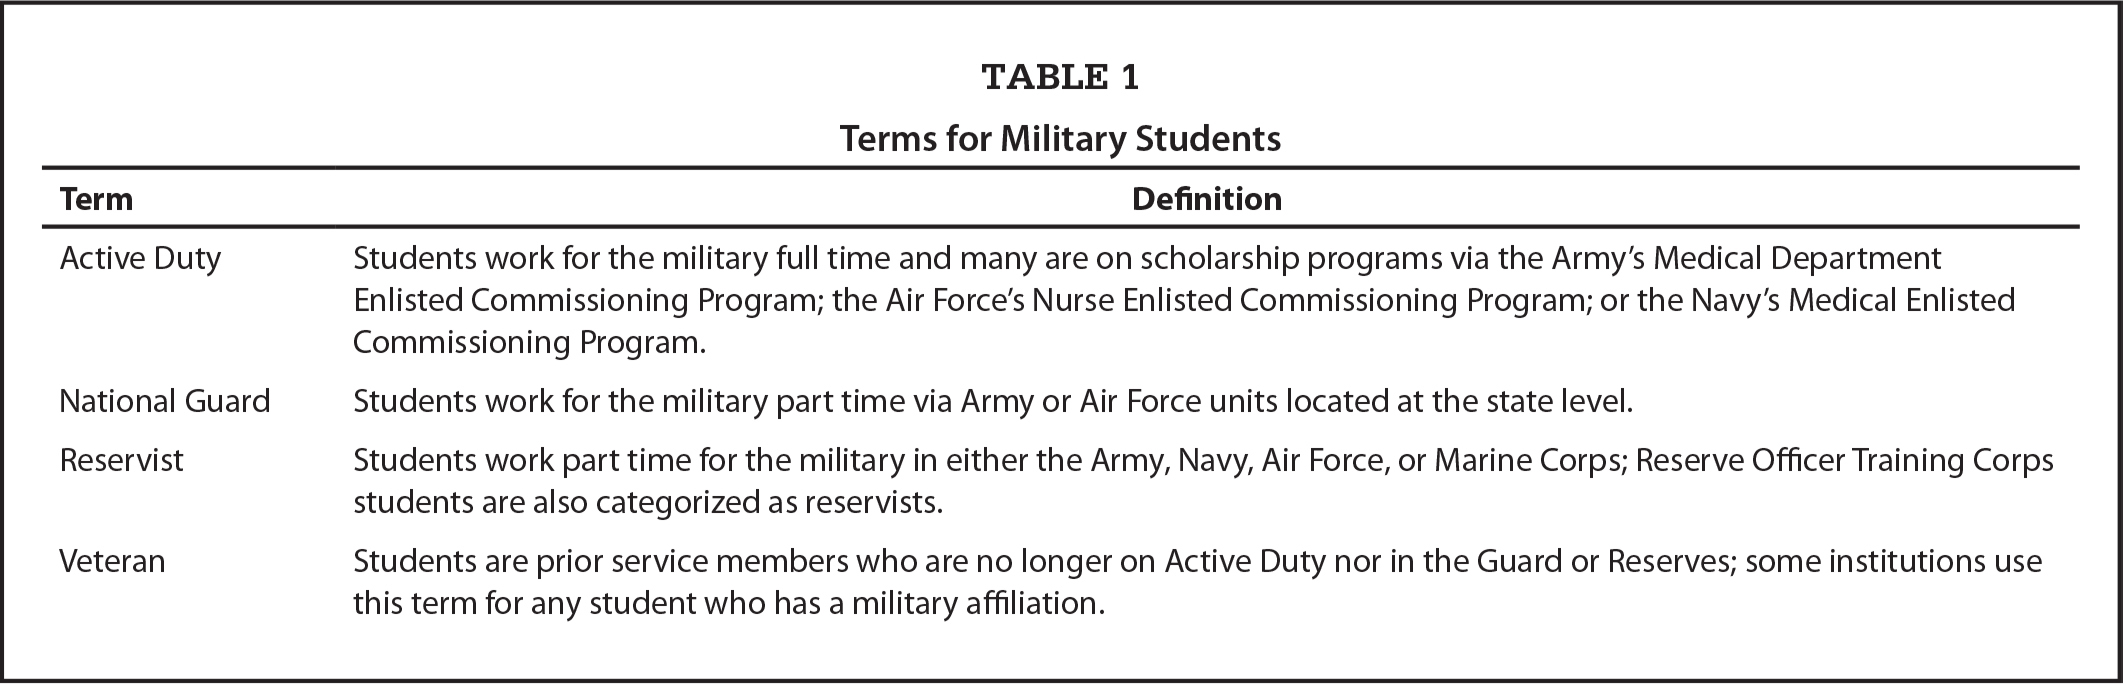 Terms for Military Students